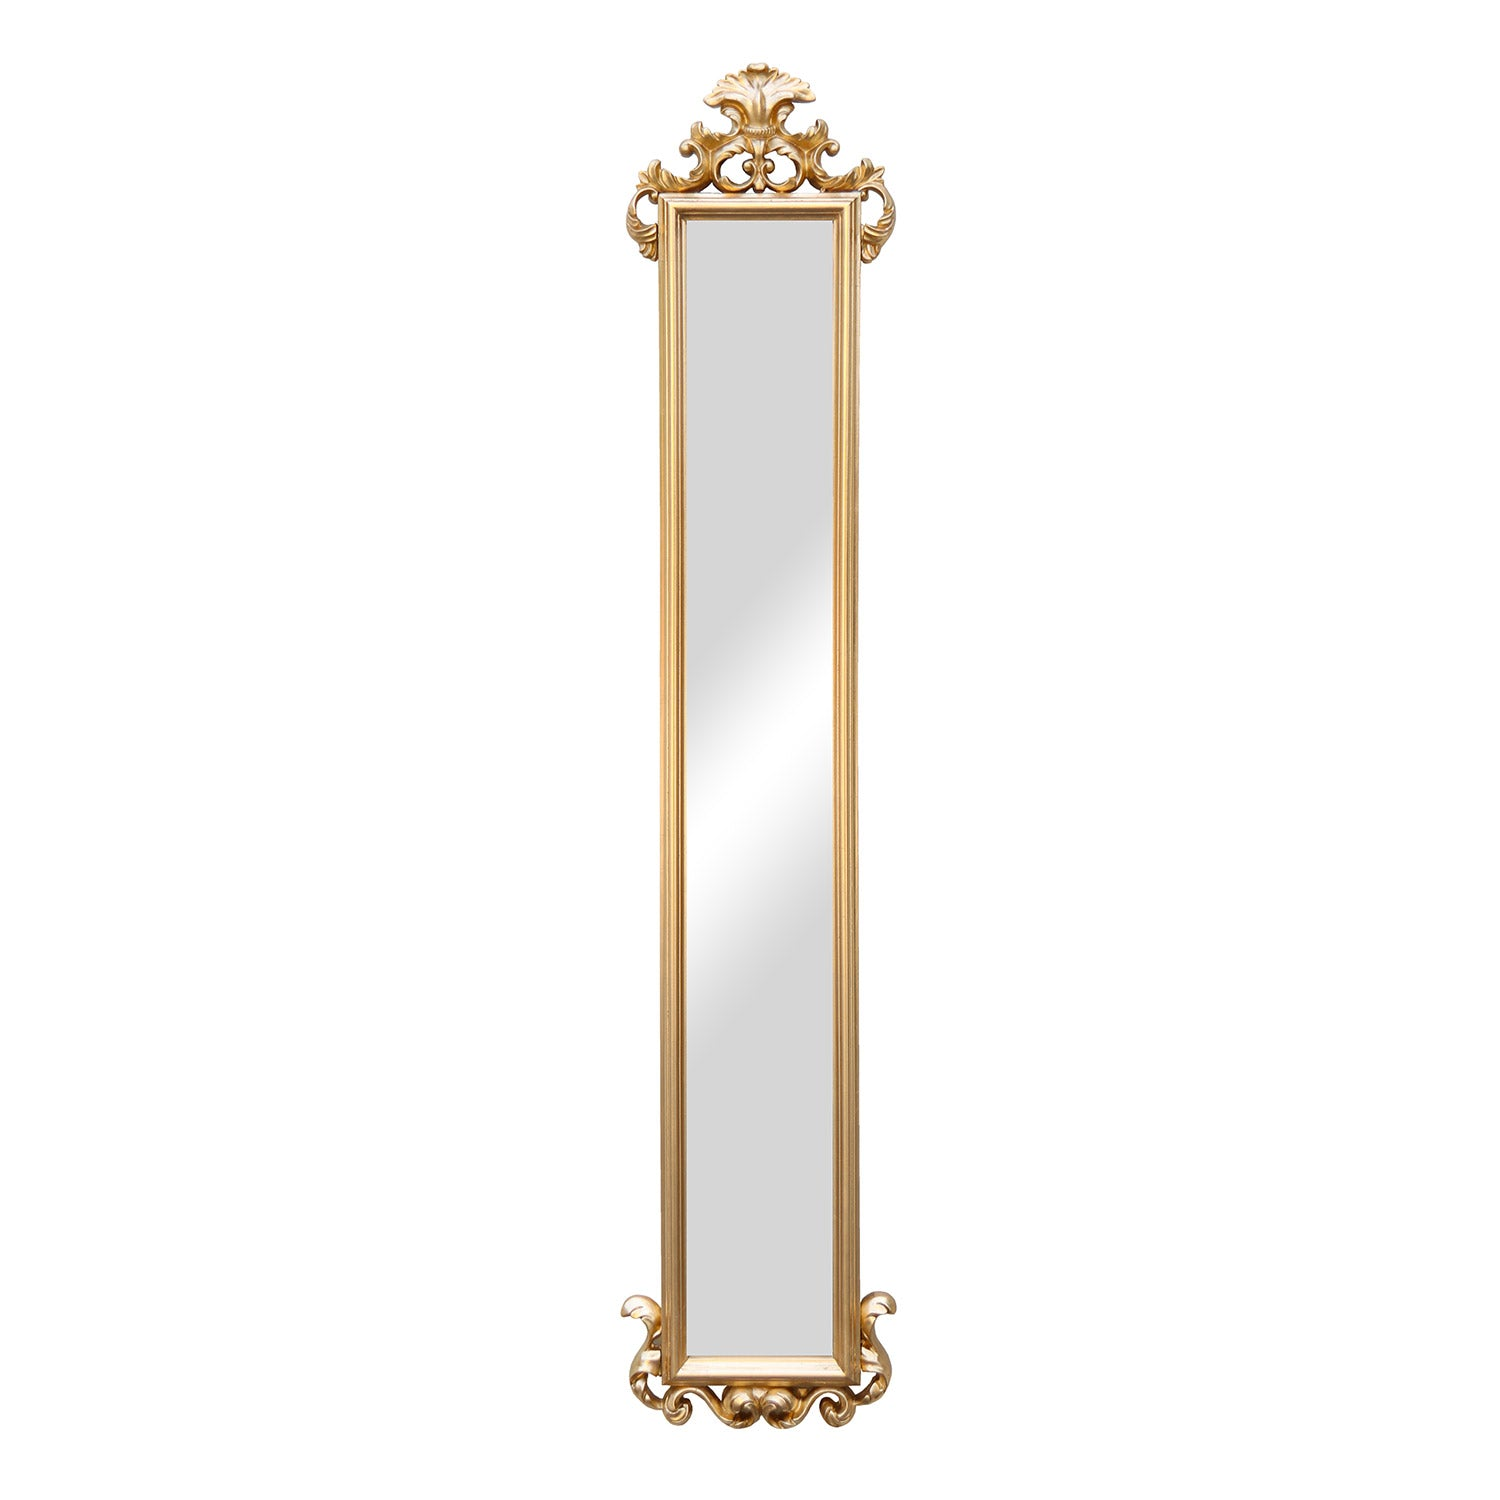 BEVELED DRESS MIRROR 1295 X 270MM GOLD